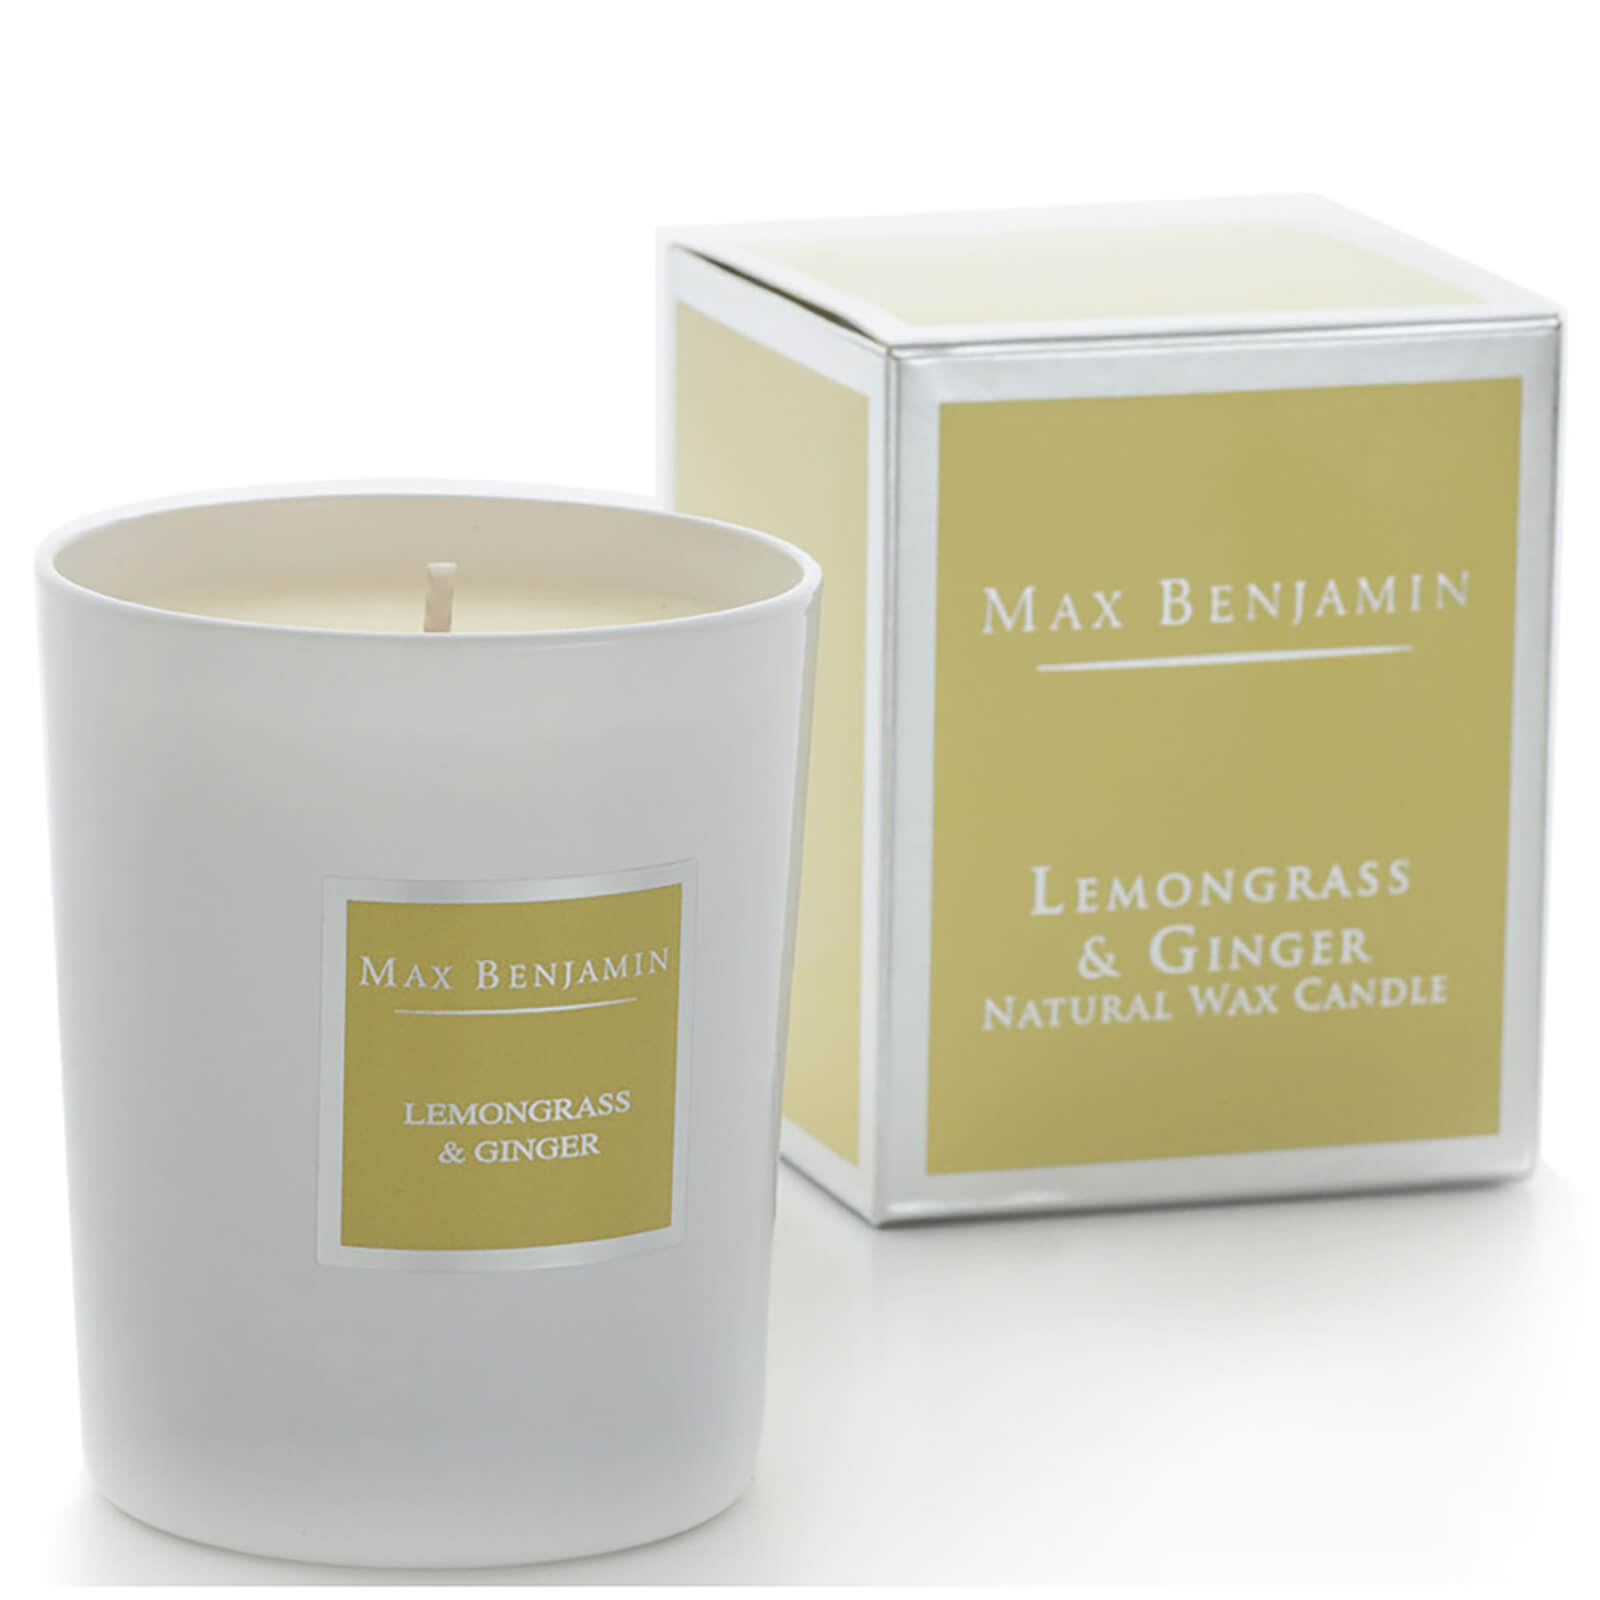 Max Benjamin Scented Glass Candle in Gift Box - Lemongrass and Ginger